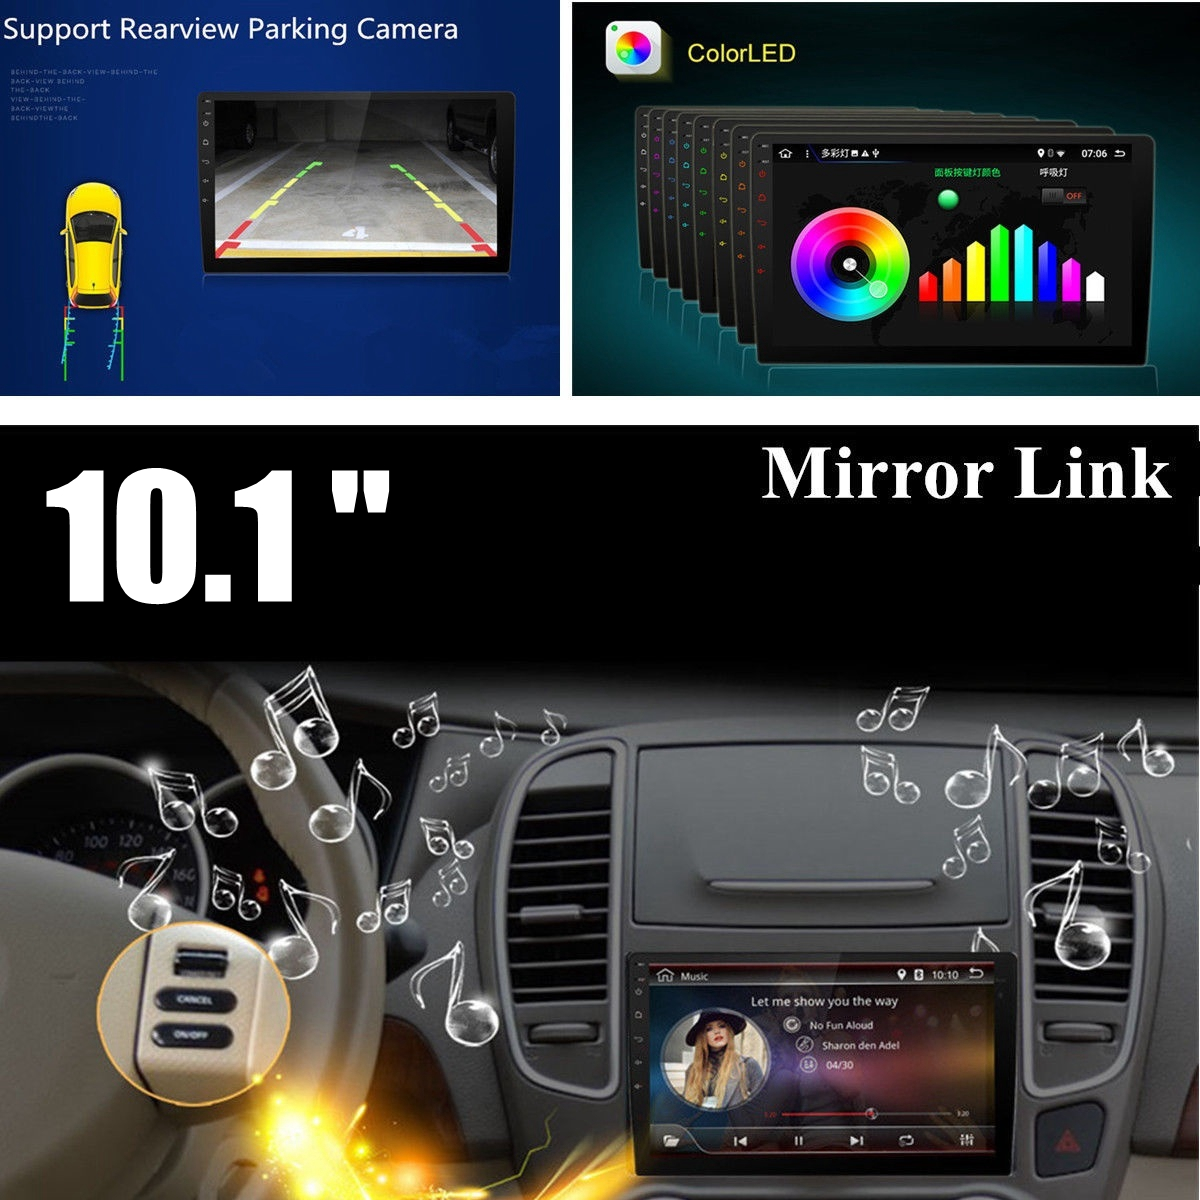 10.1Inch 2 DIN for Android 8.1 Car MP5 Player 1+16G Quard Core Touch Screen GPS WiFi DVR Support Camera